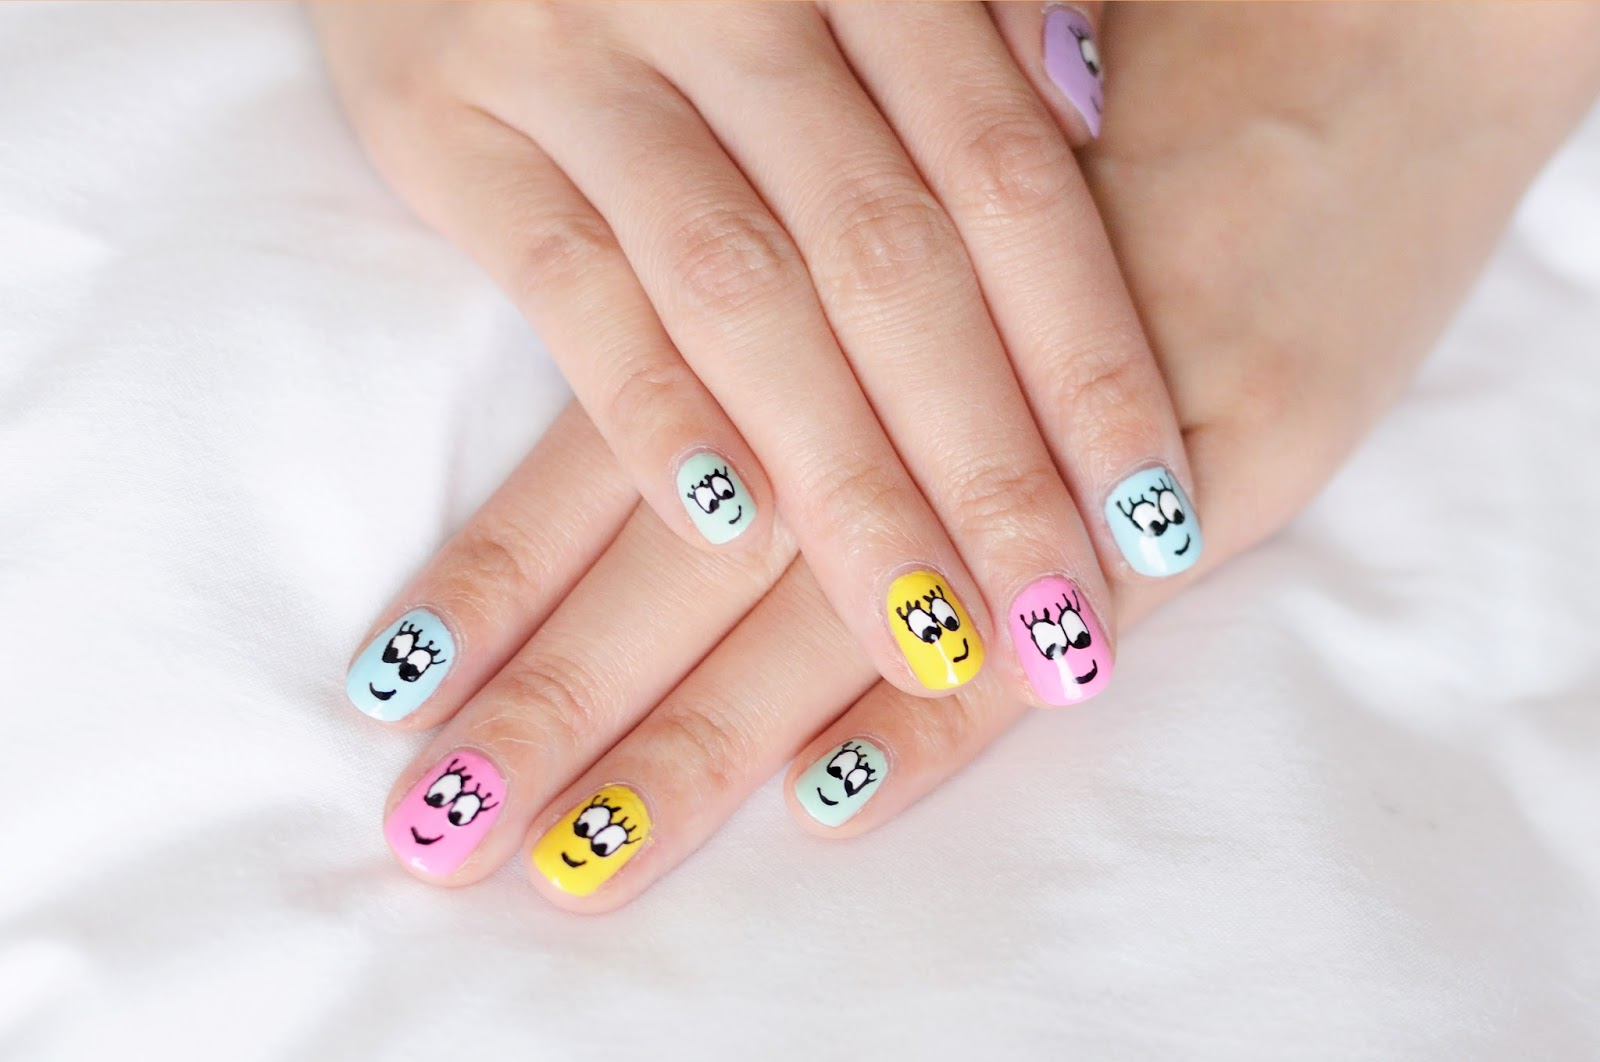 Smiley Faces Nail Art By Wah Nails In London Temporarysecretary Blog